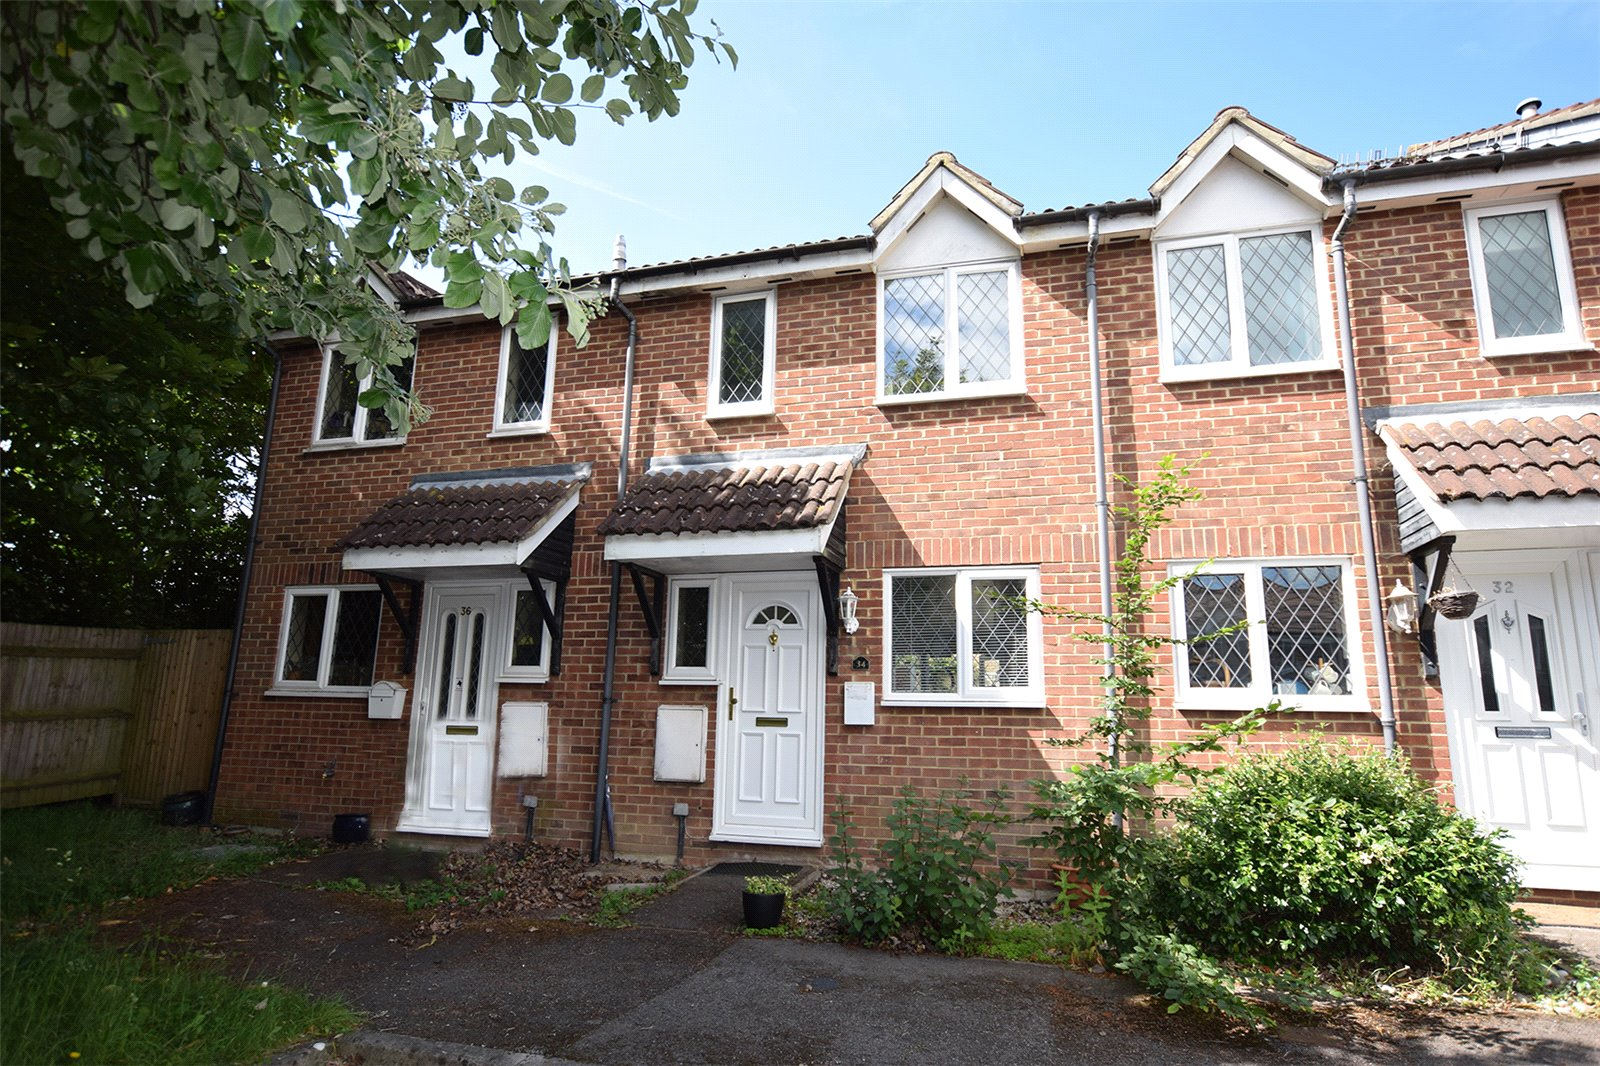 2 Bedrooms Terraced House for sale in Radcliffe Way, Binfield, Berkshire, RG42